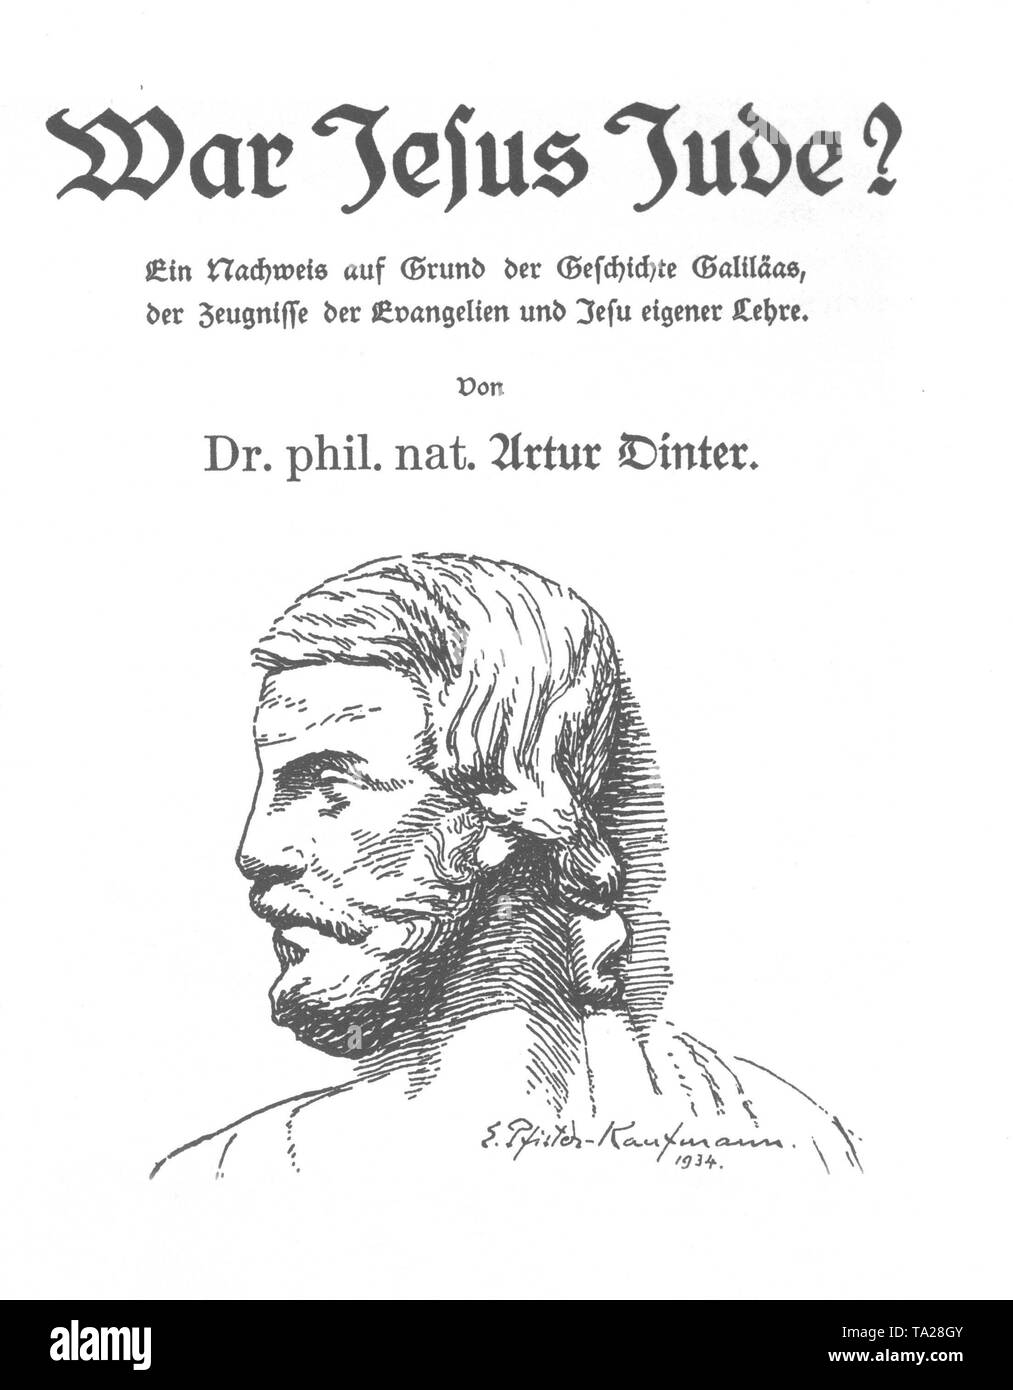 Title page of the book 'Was Christ a Jew?' by author Artur Dinter - Stock Image